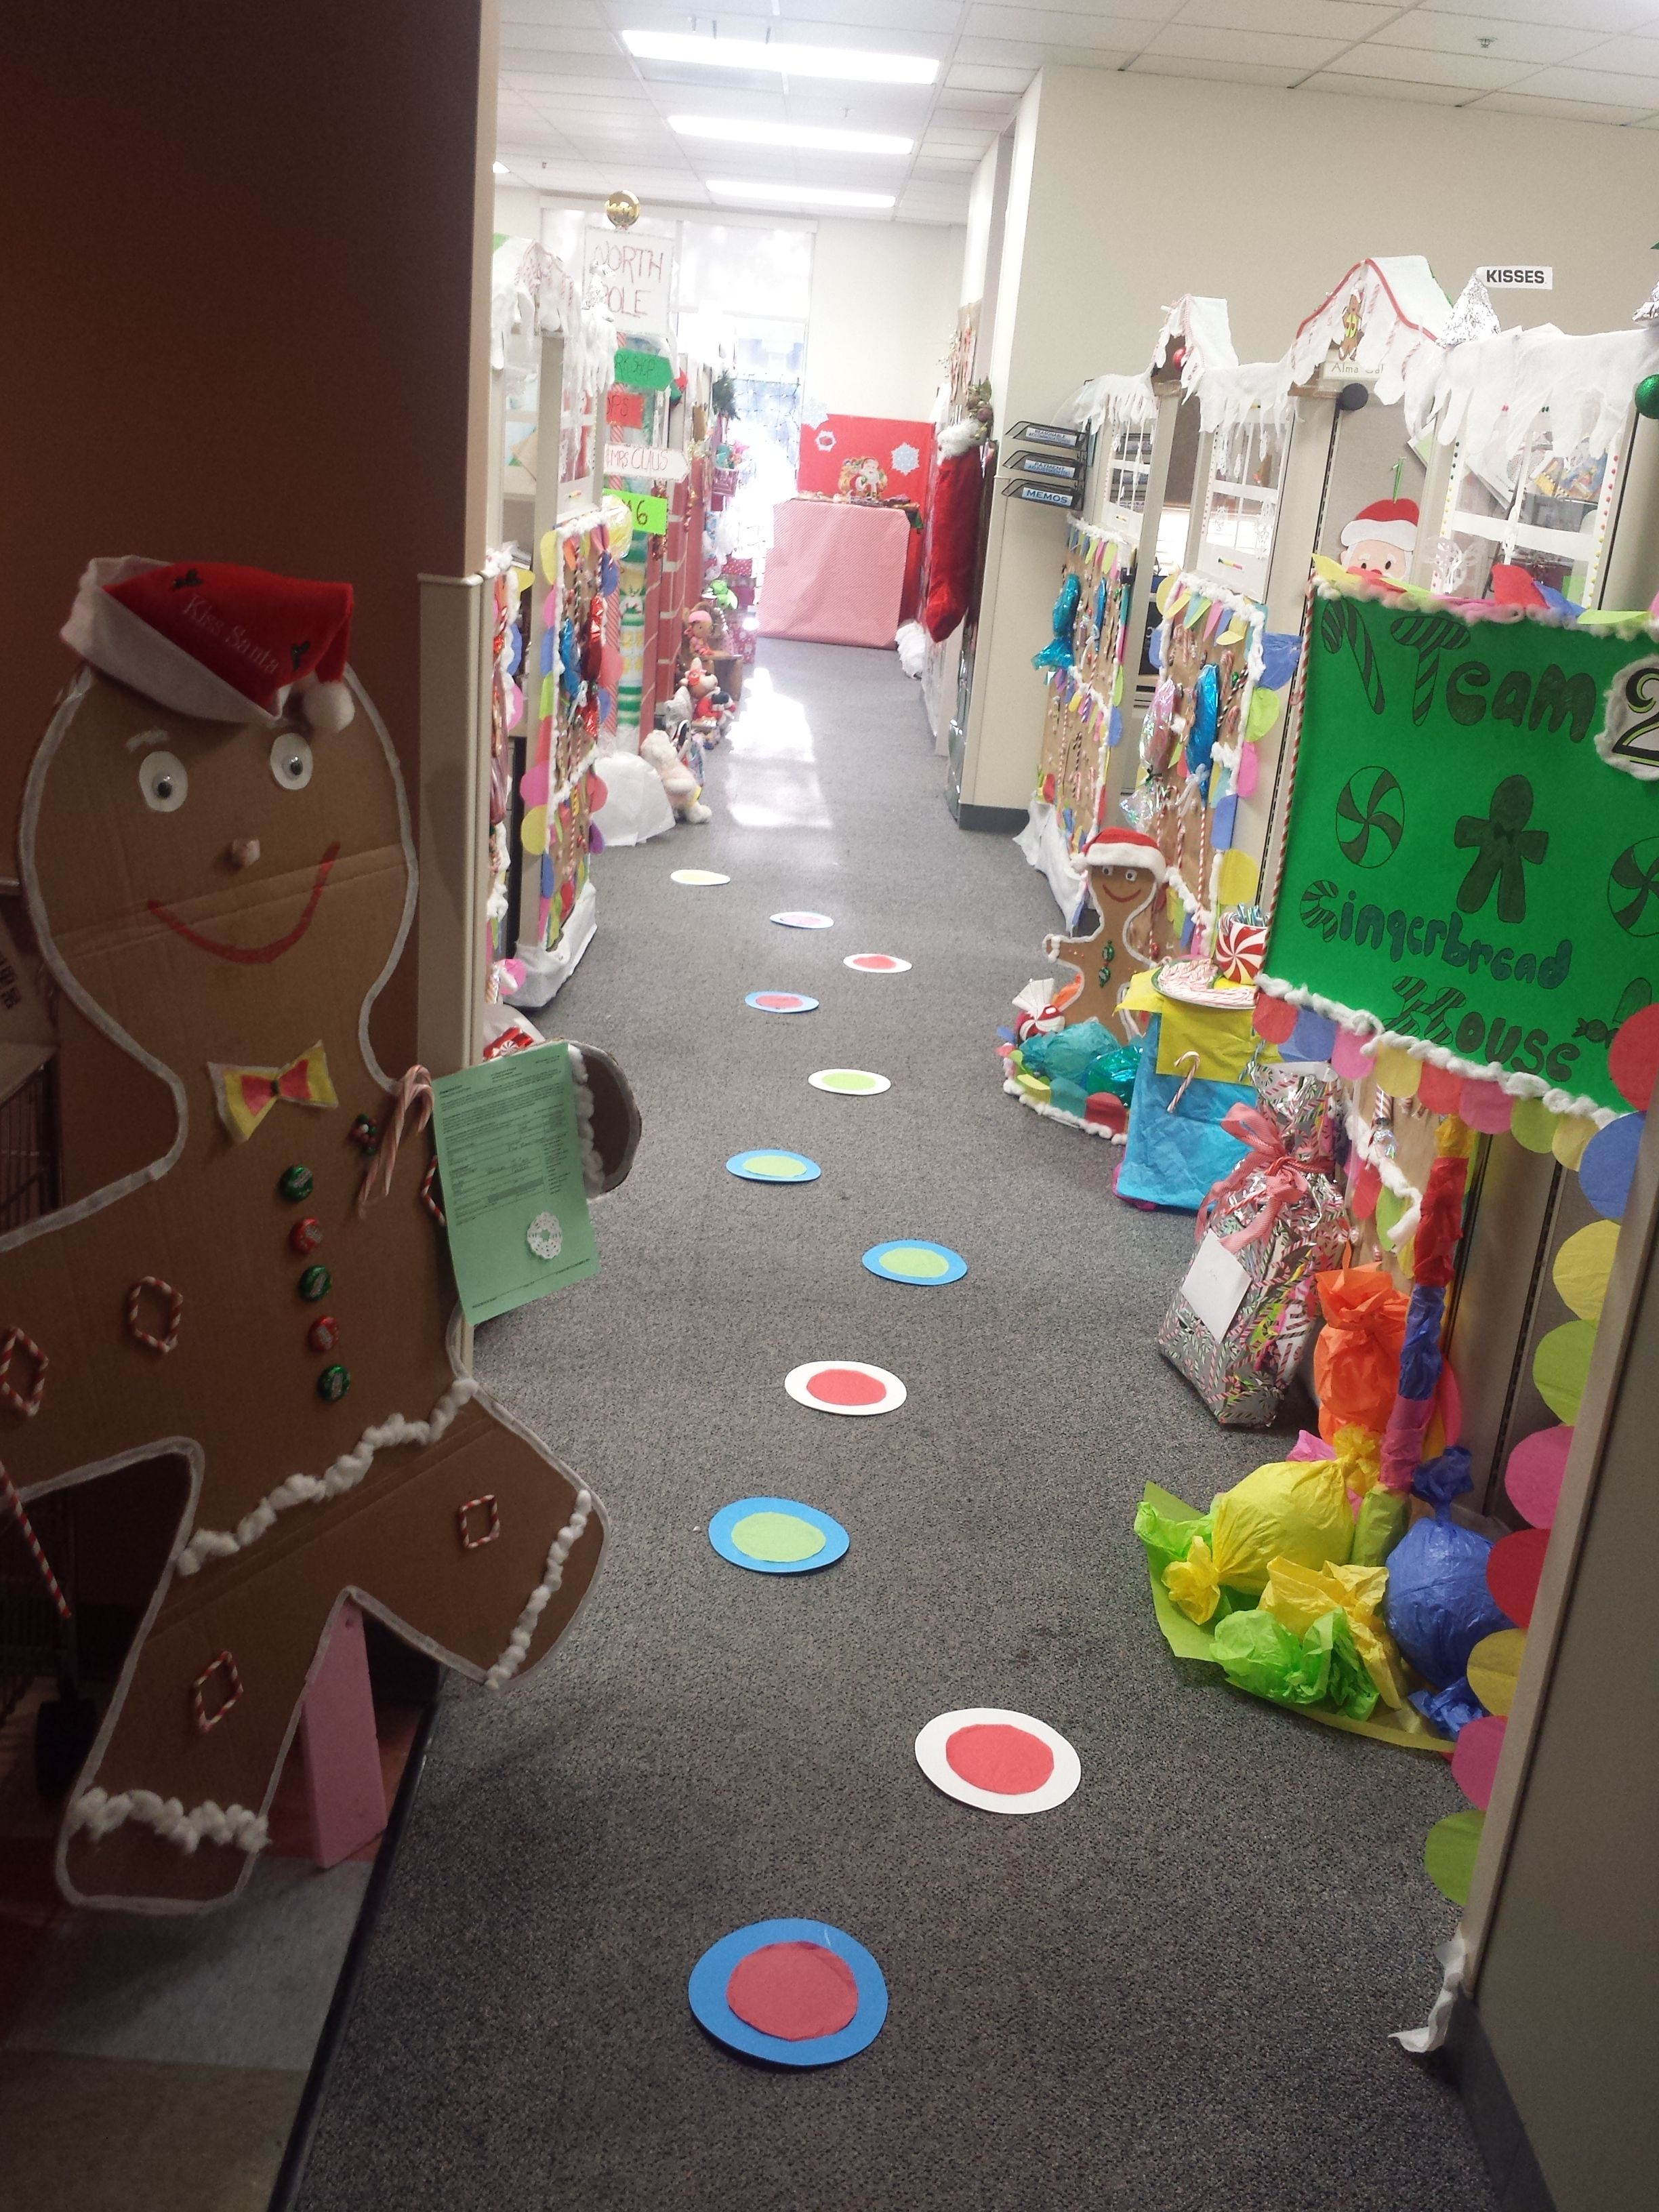 Christmas decorating themes for workplace - photo#44